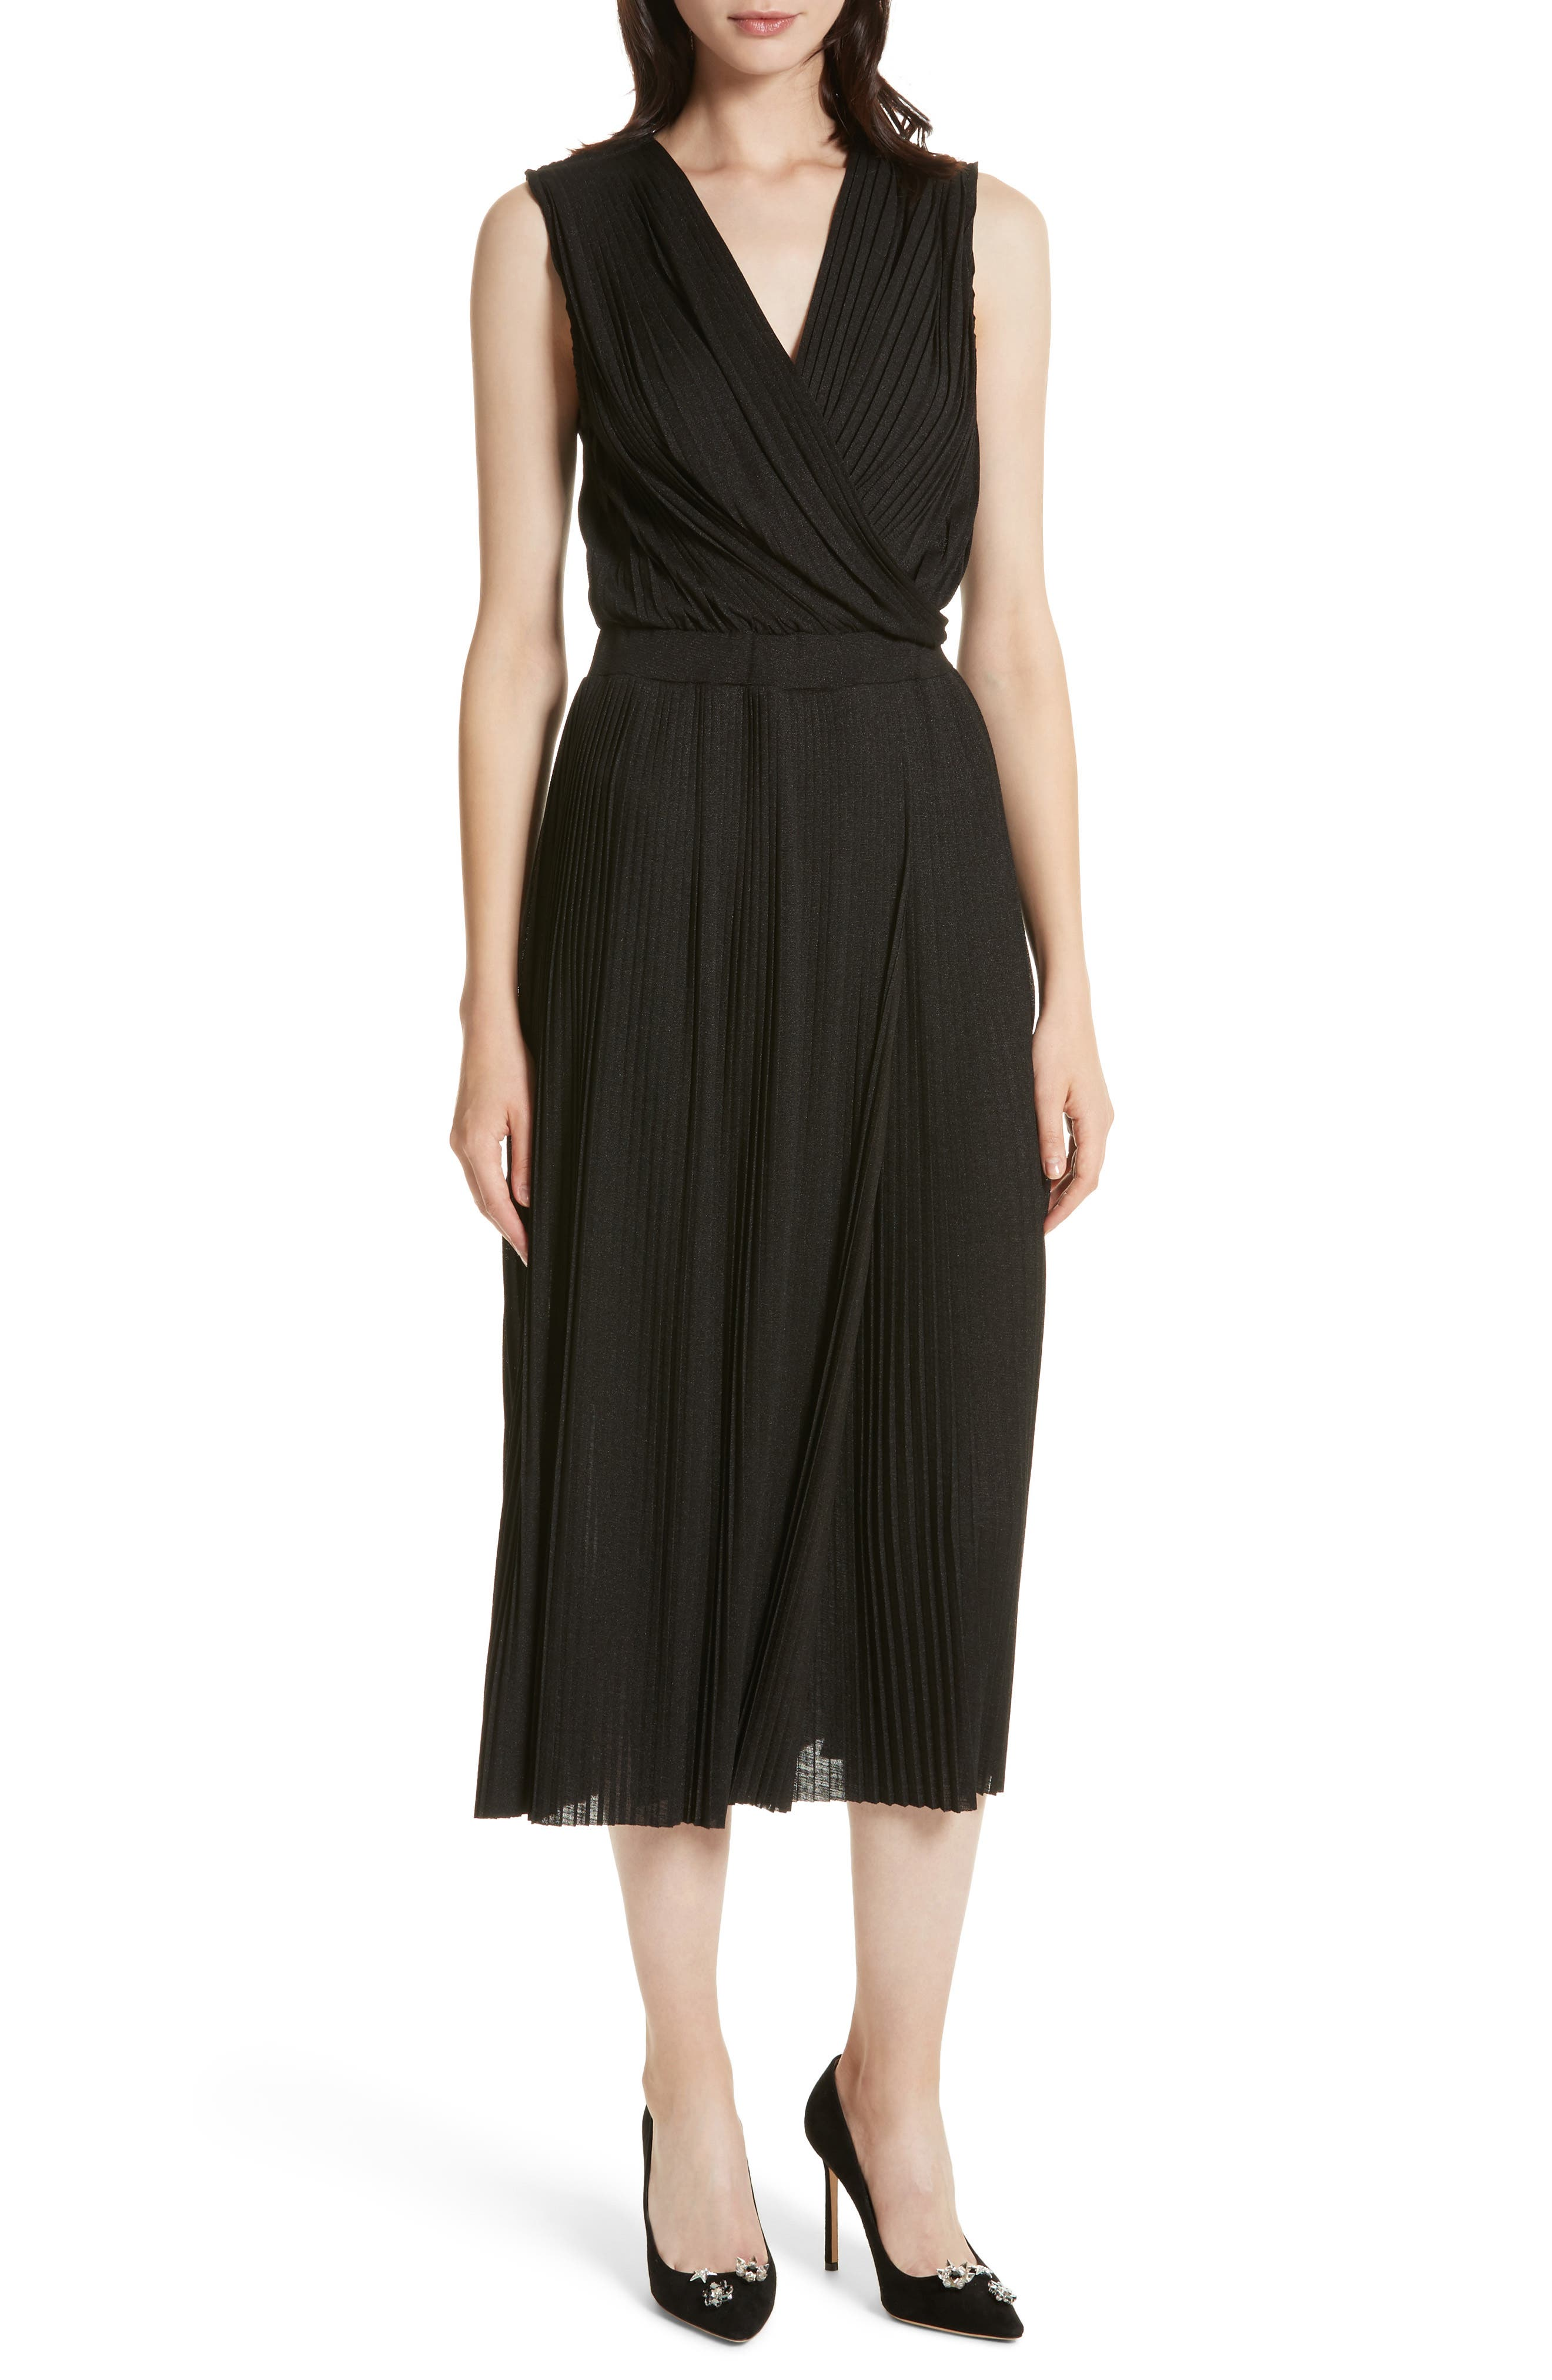 Tracy Reese Surplice Fit & Flare Dress